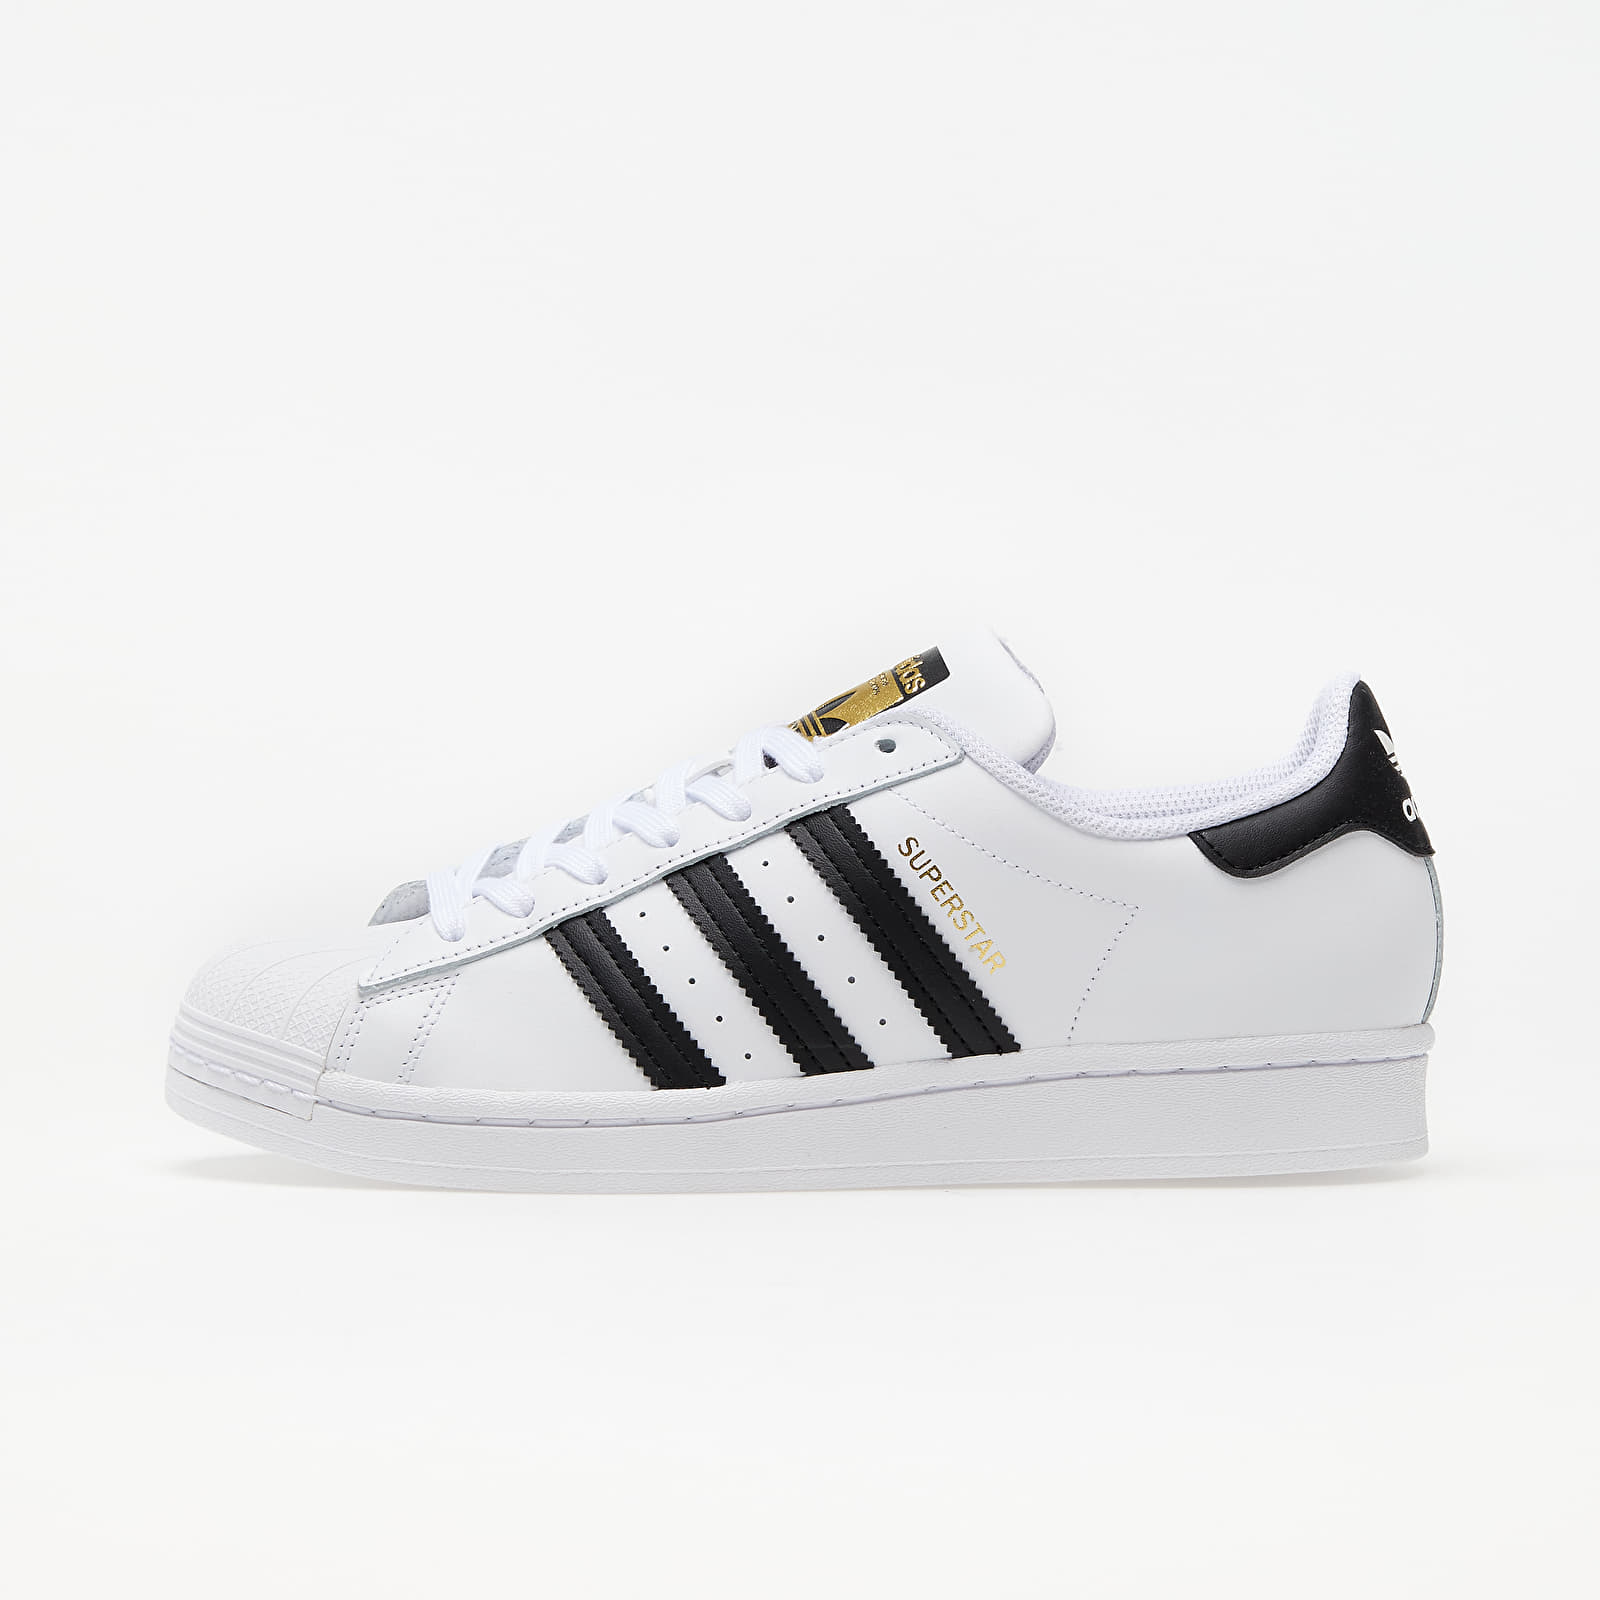 adidas Superstar Ftw White/ Core Black/ Ftw White EUR 48